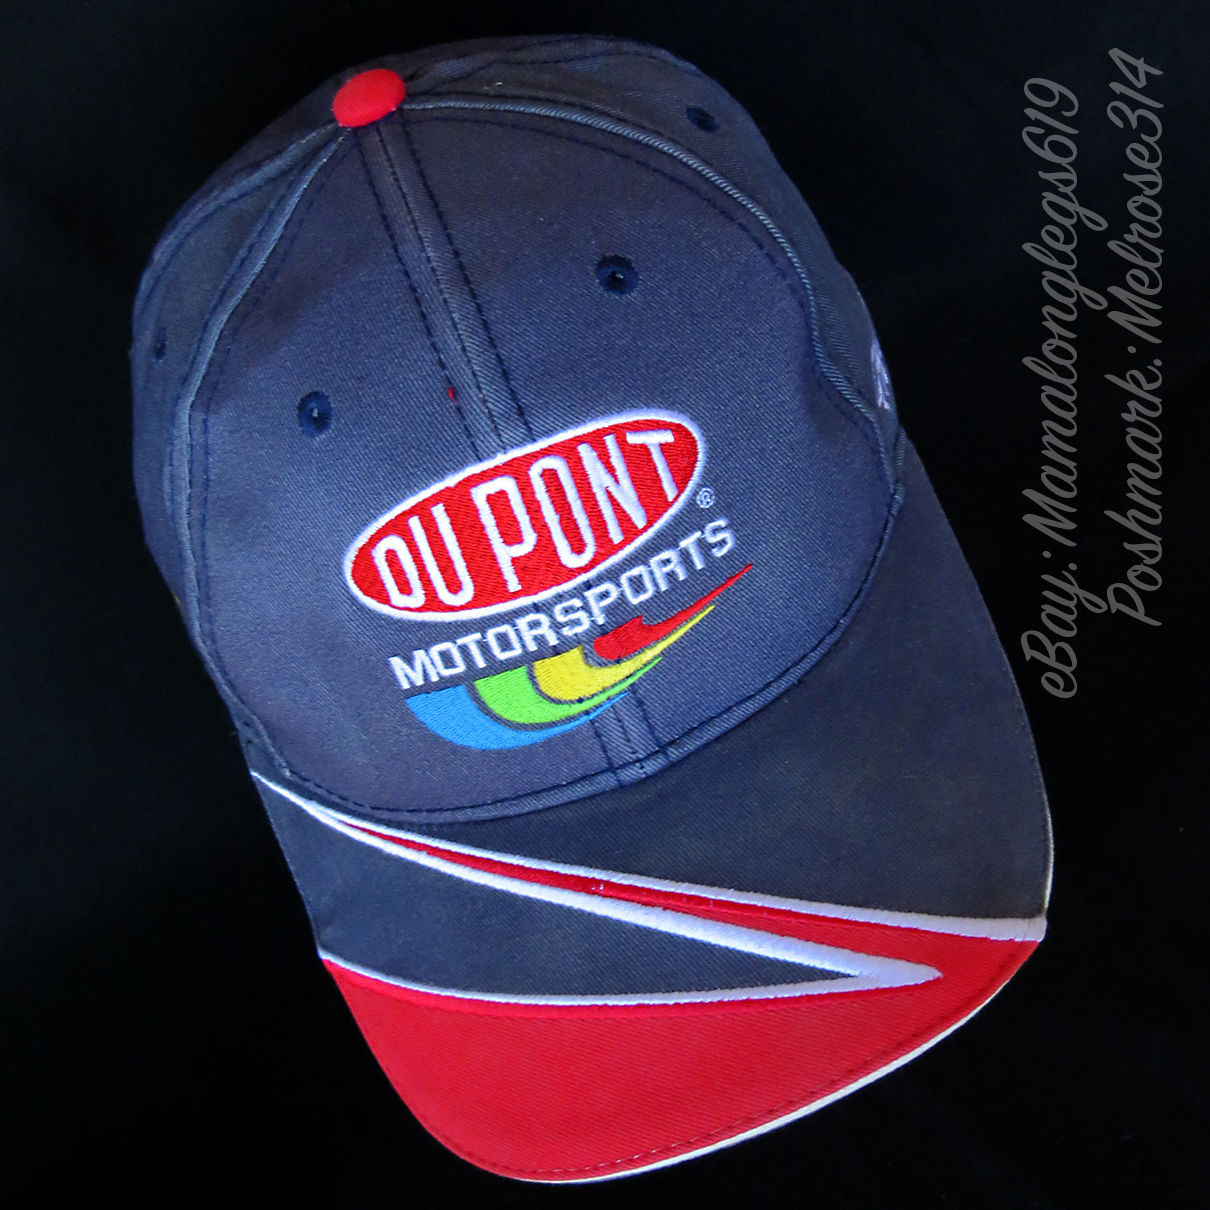 9f77bcc60b3 Worn In Vtg Dupont Motorsports Jeff Gordon and 17 similar items